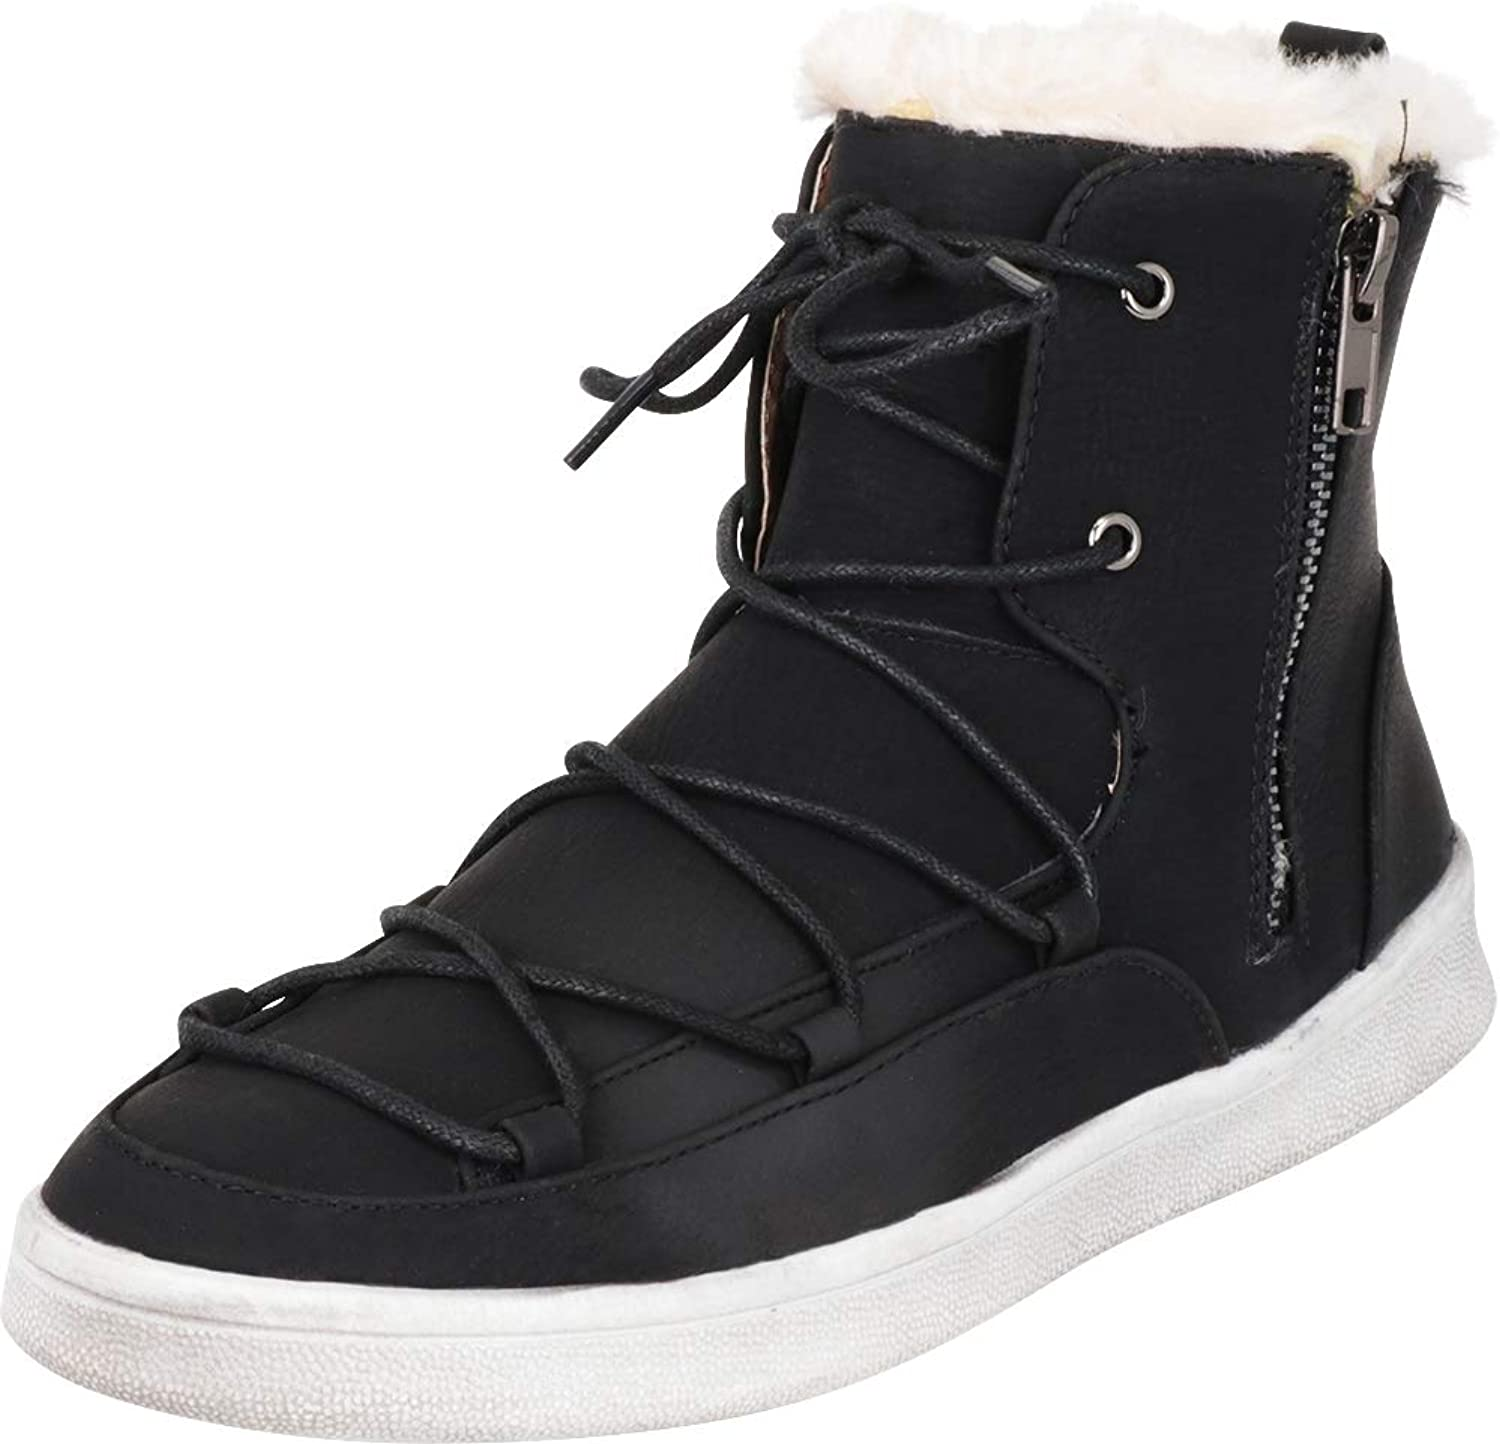 Cambridge Select Women's High Top Faux Fur Lace-Up Ankle Boot Fashion Sneaker